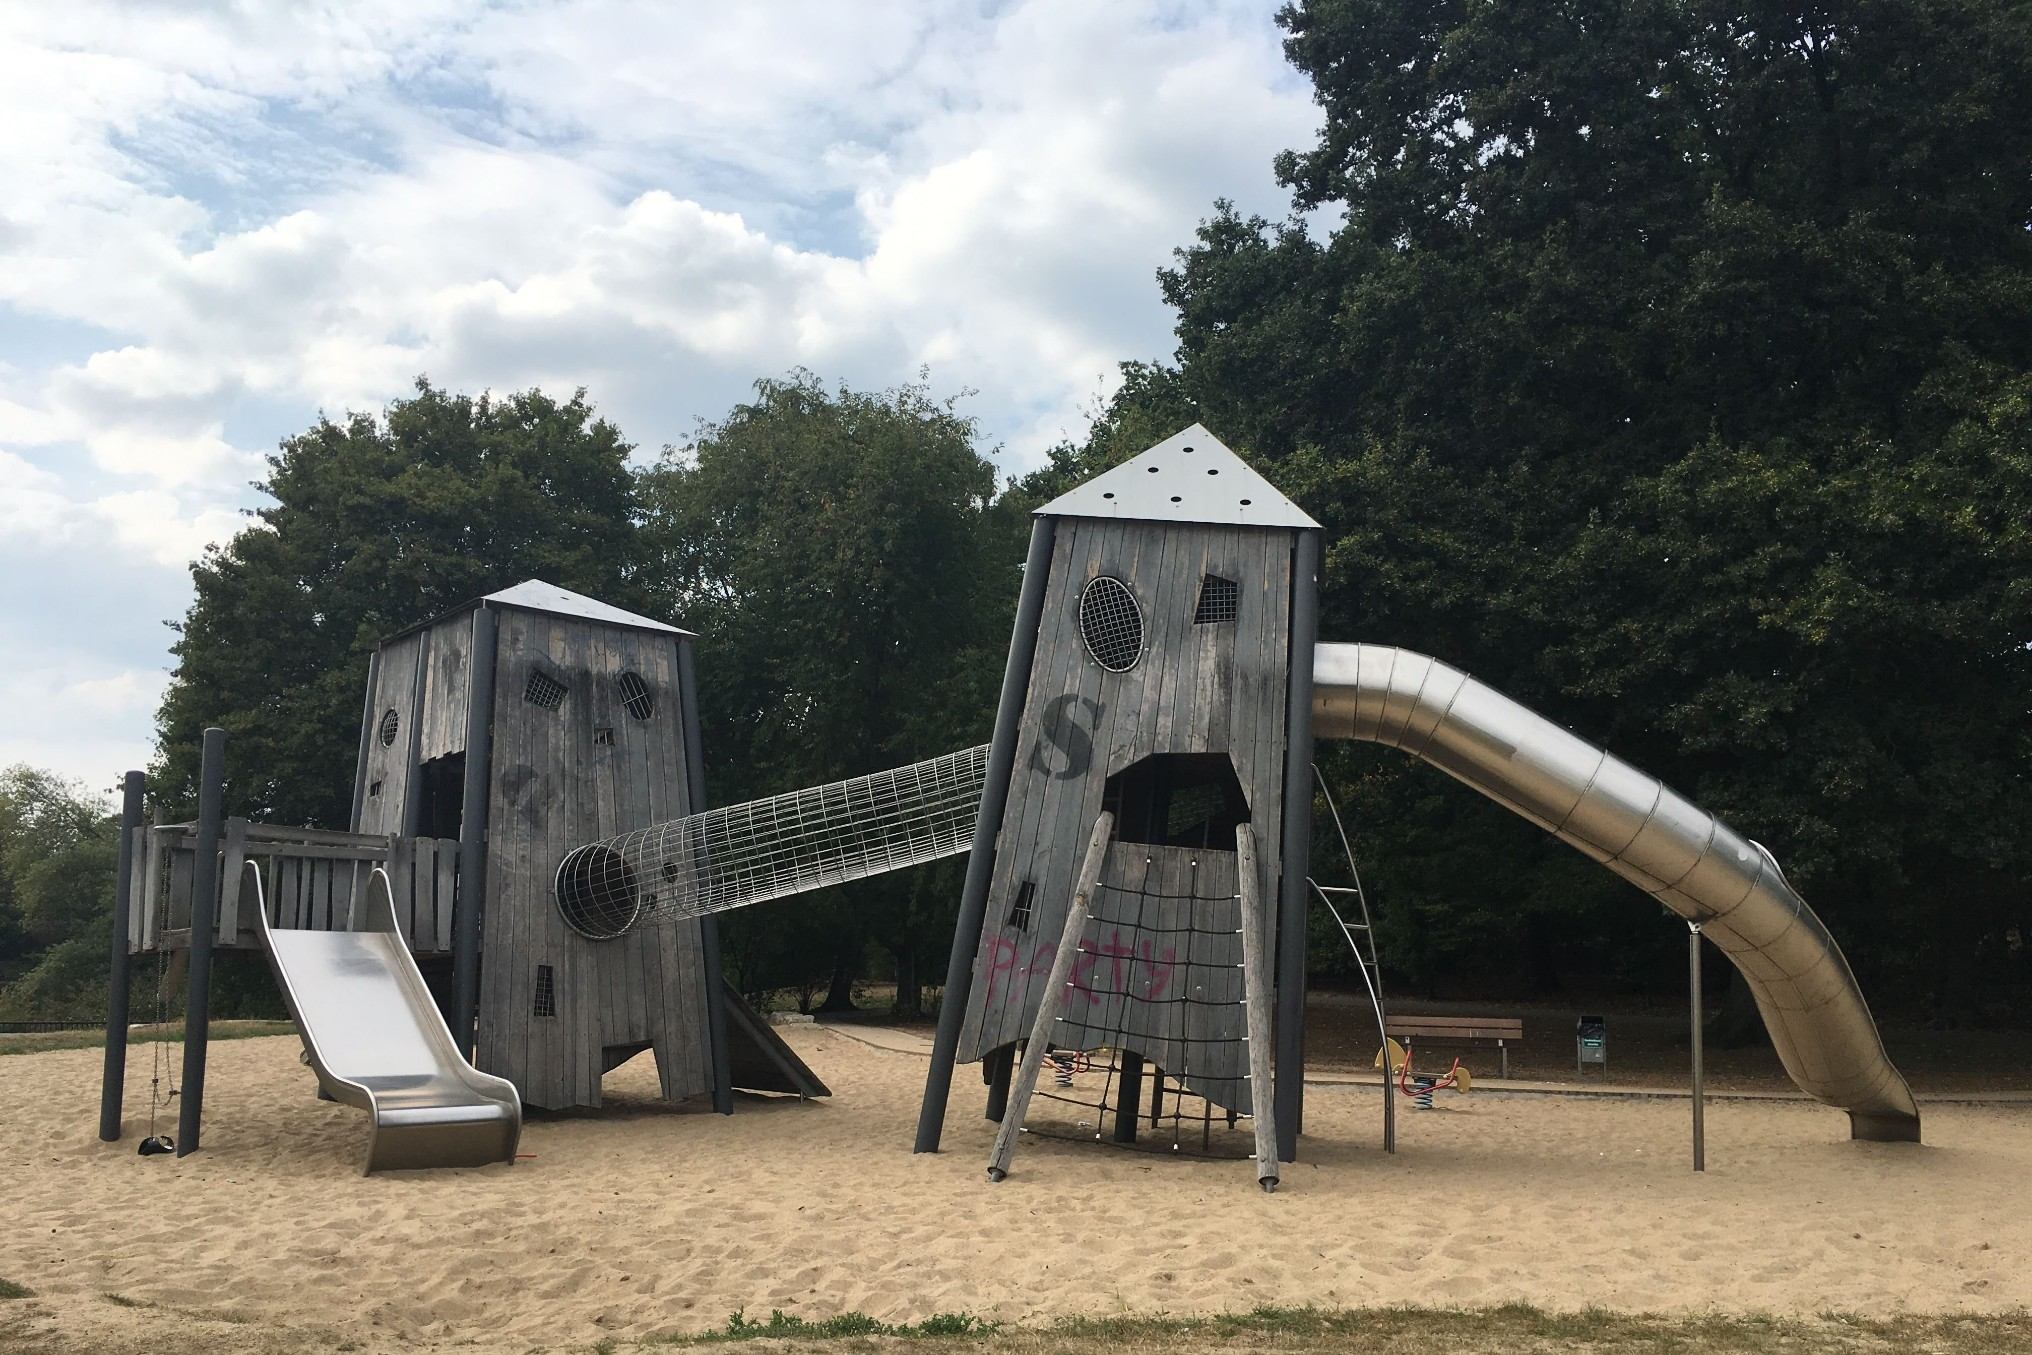 Post-Apocalyptic Playgrounds in Wolfsburg, Germany